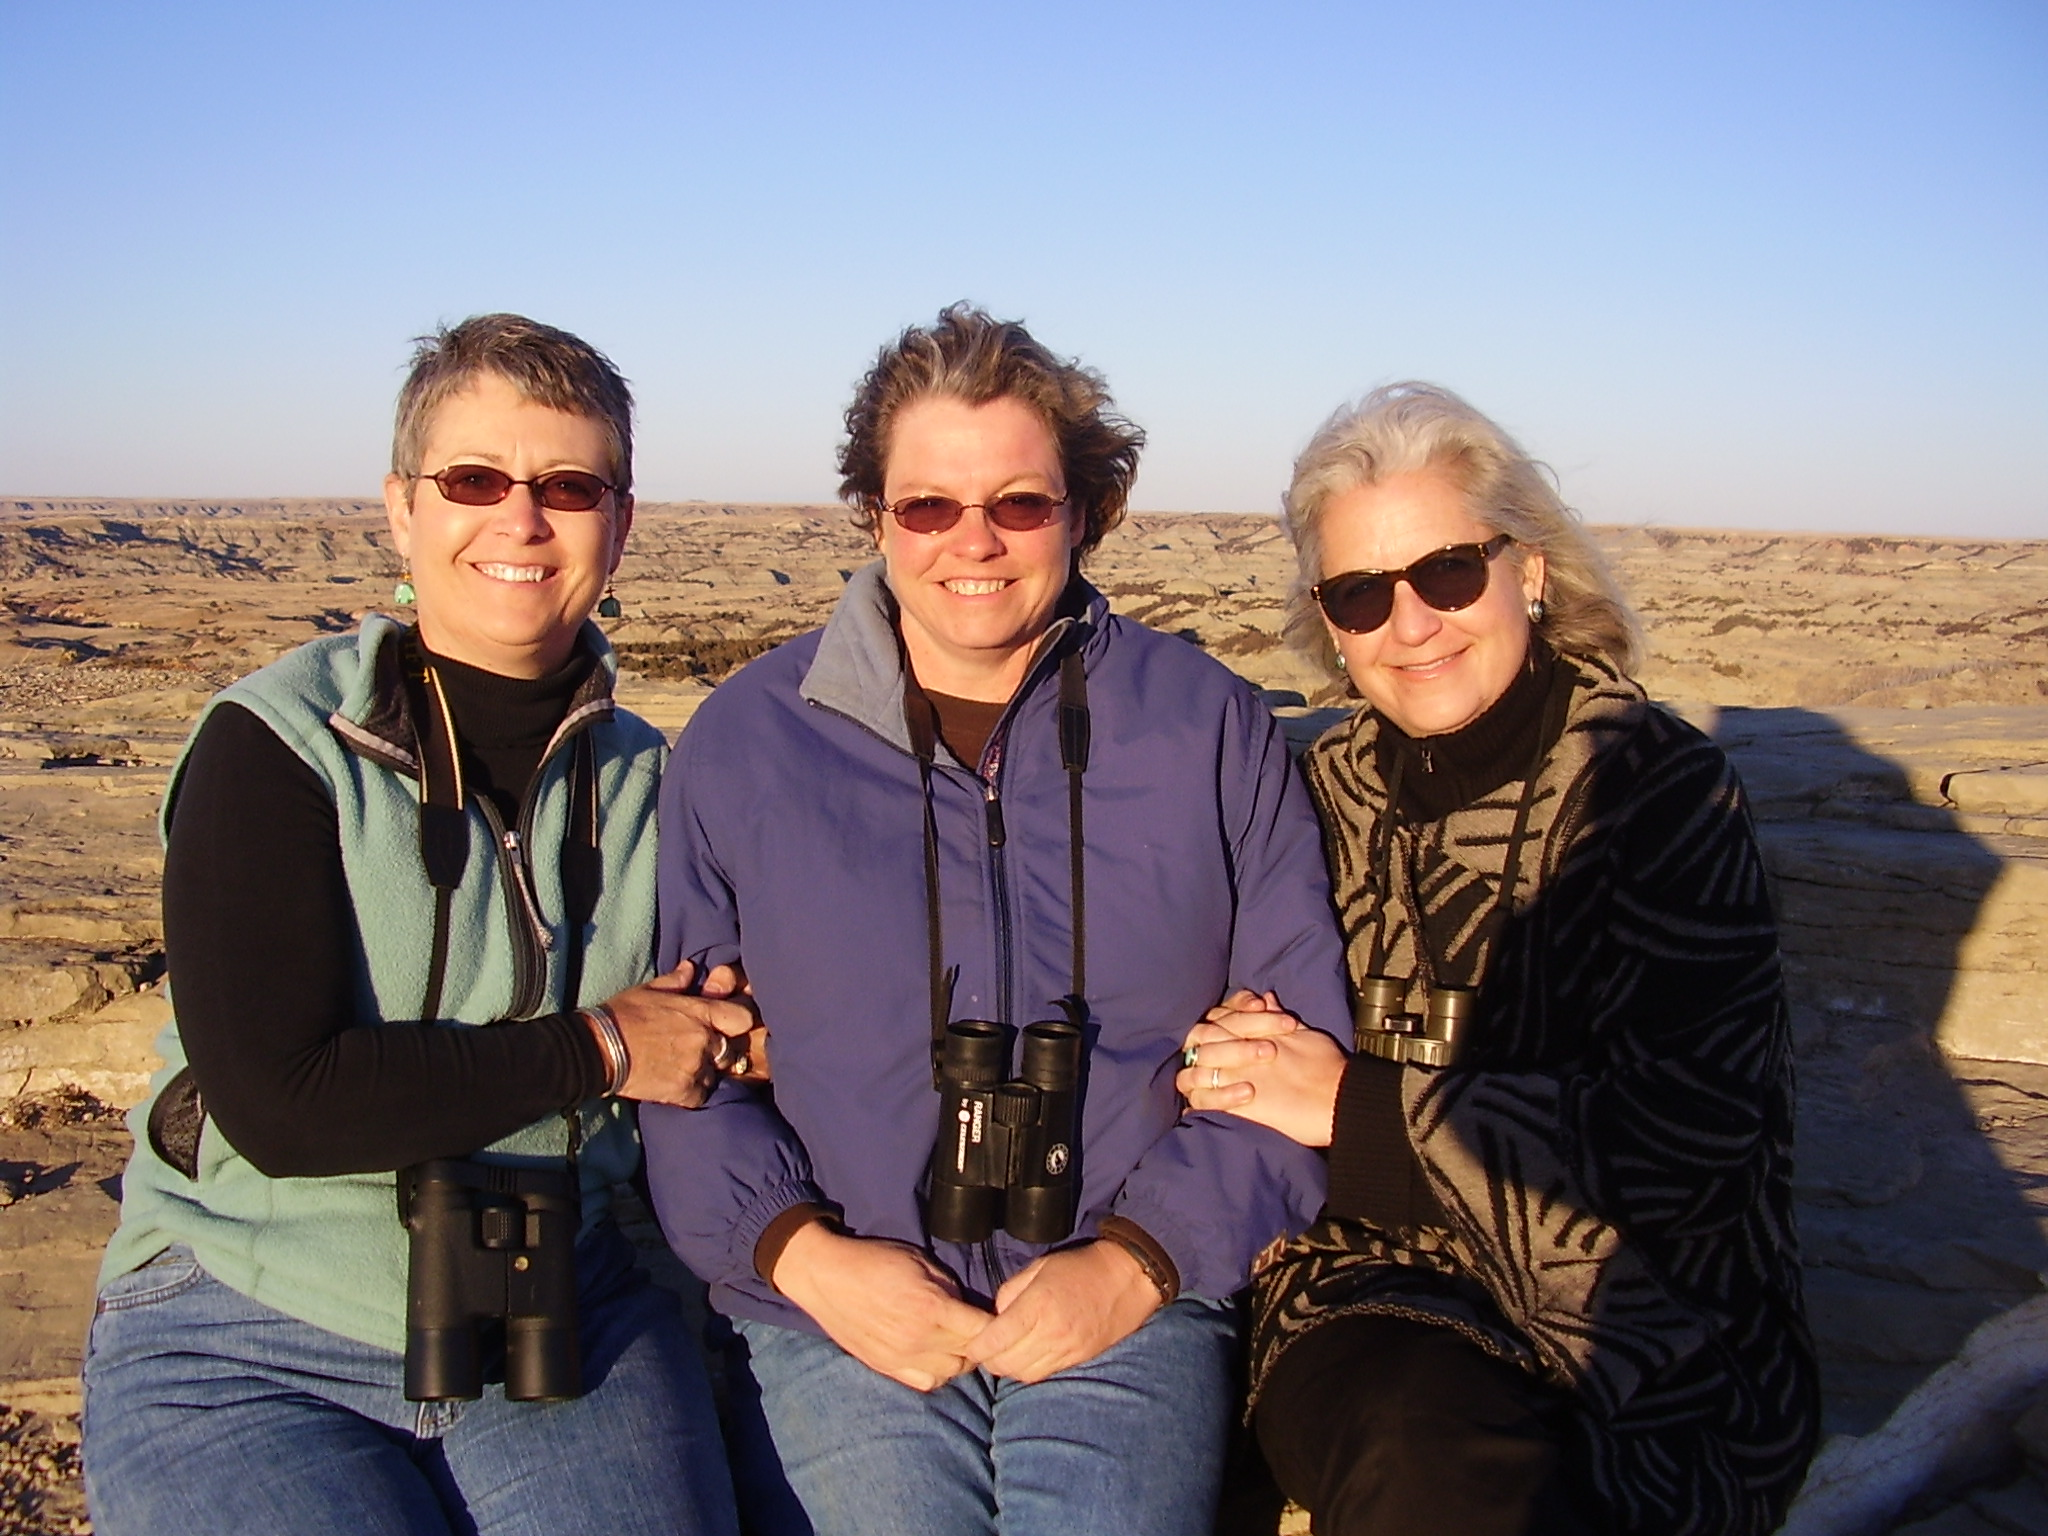 From left to right: Lillian Crook, Valerie Naylor, and Terry Tempest Williams at Painted Canyon, TRNP. March 9, 2008. Photo by Jan Swenson.